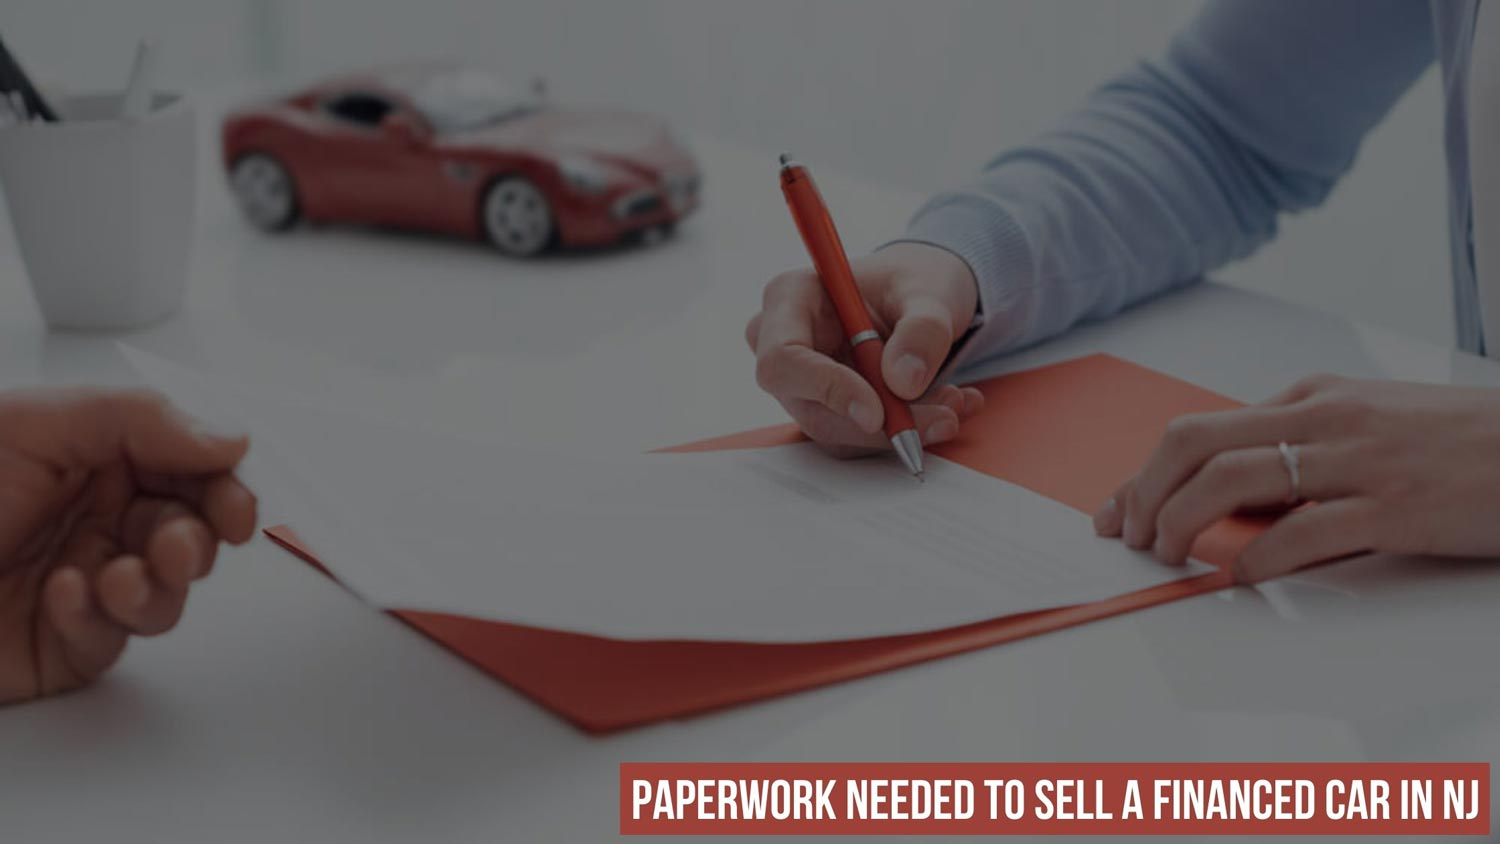 Paperwork Needed To Sell a Financed Car in NJ